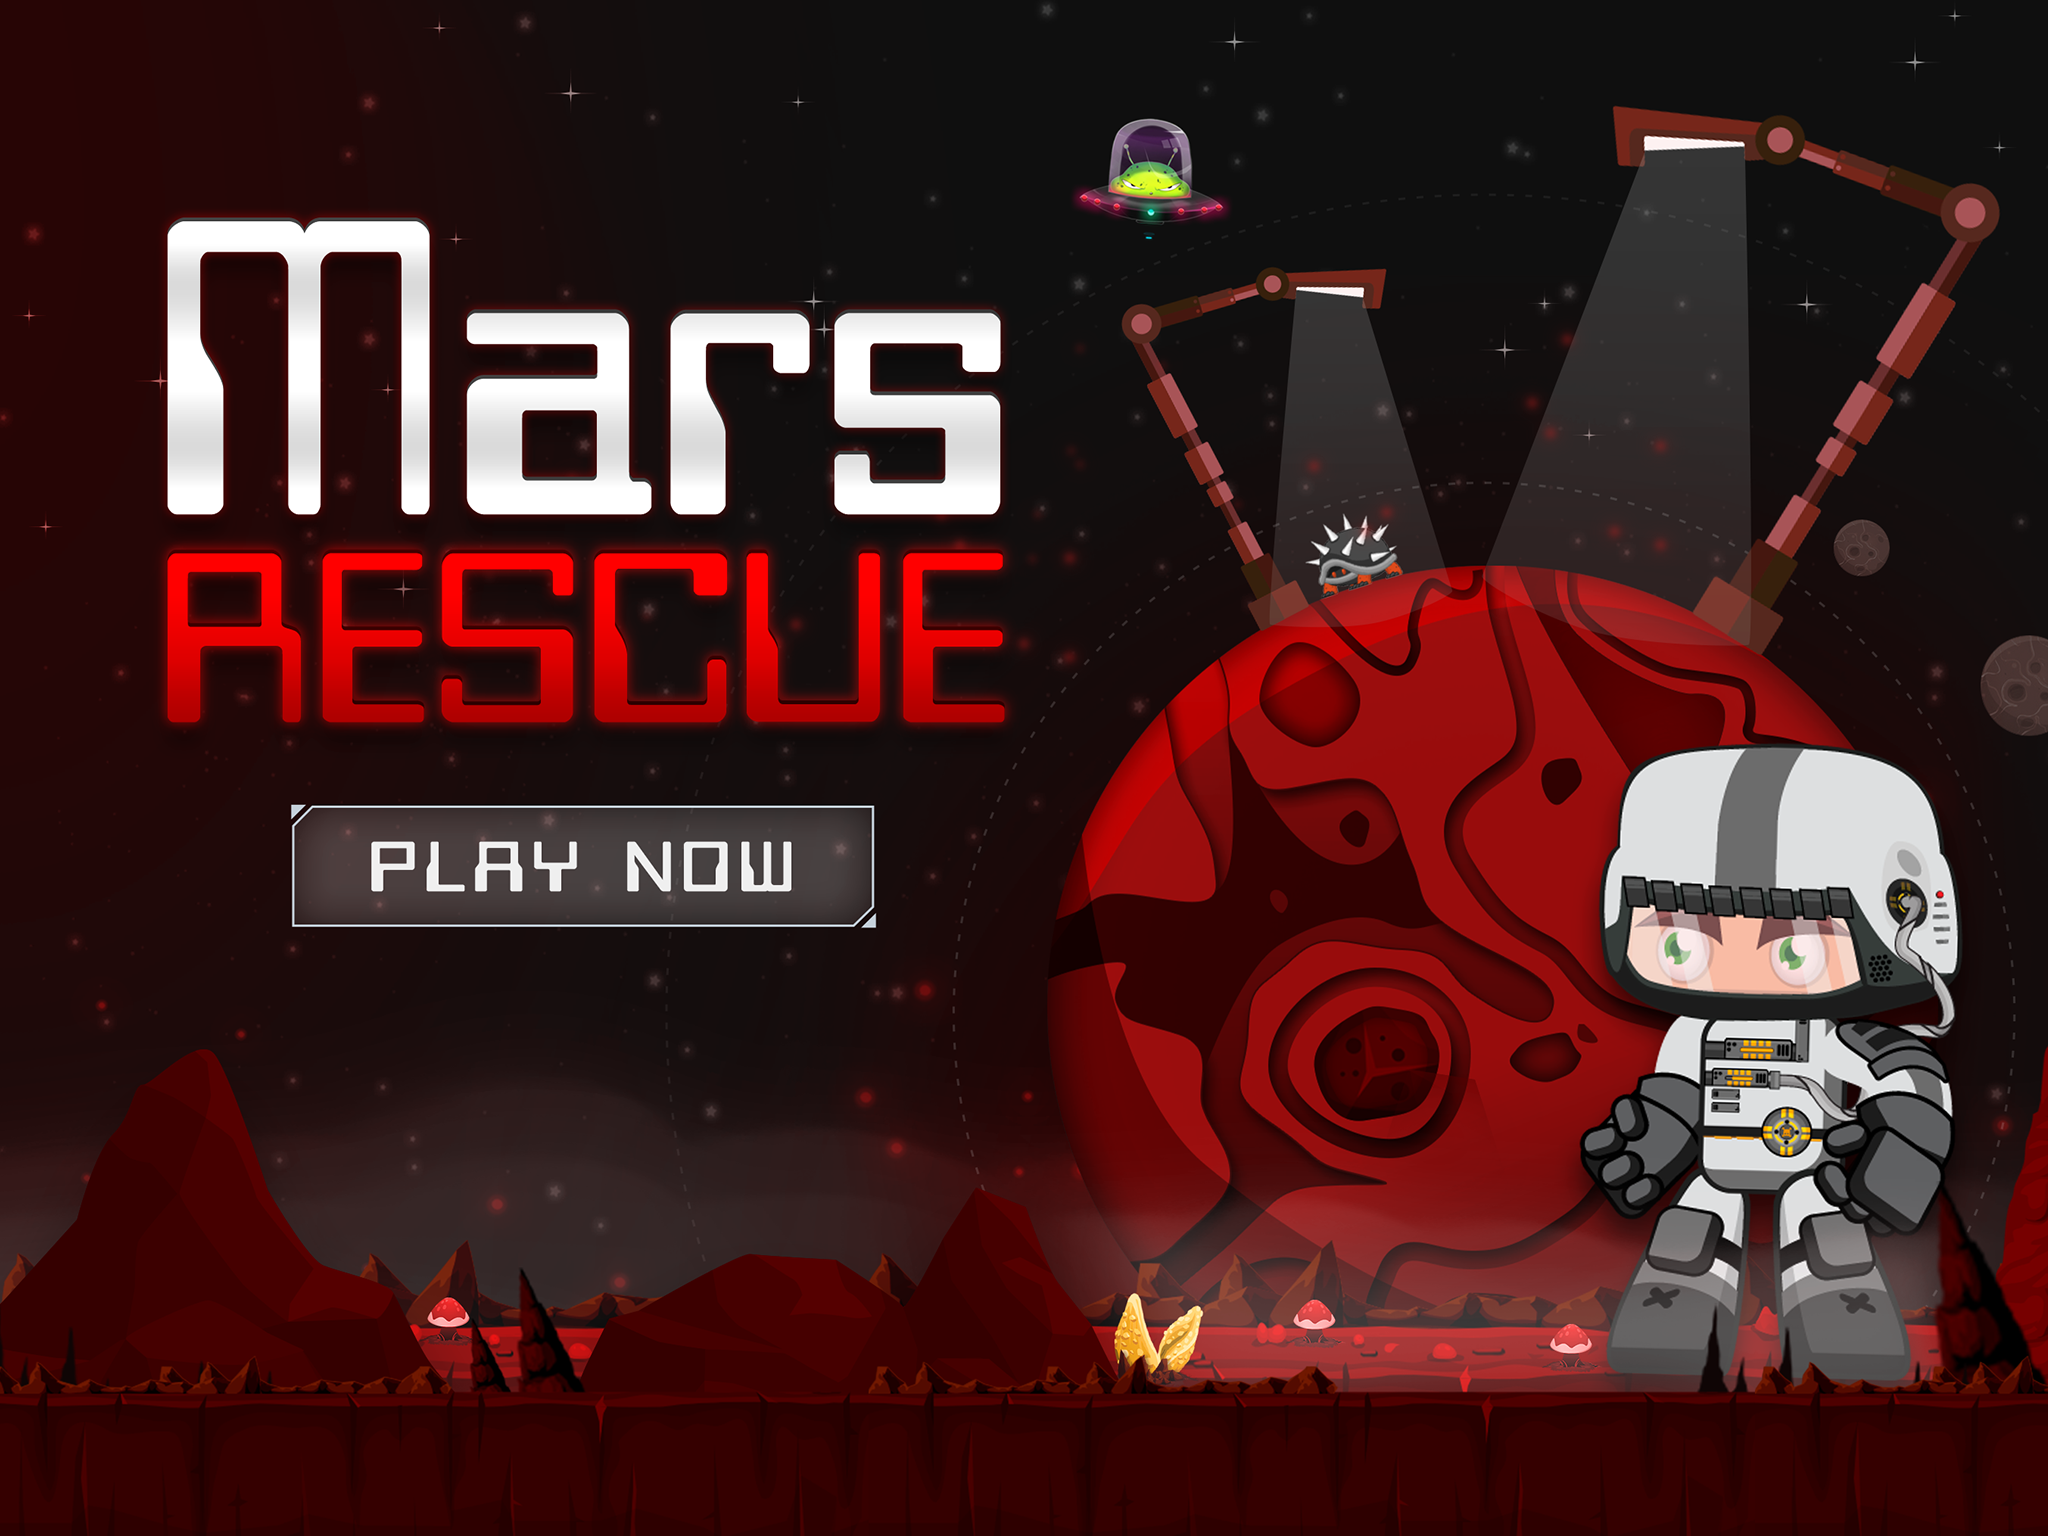 Mars_Rescue_1.png